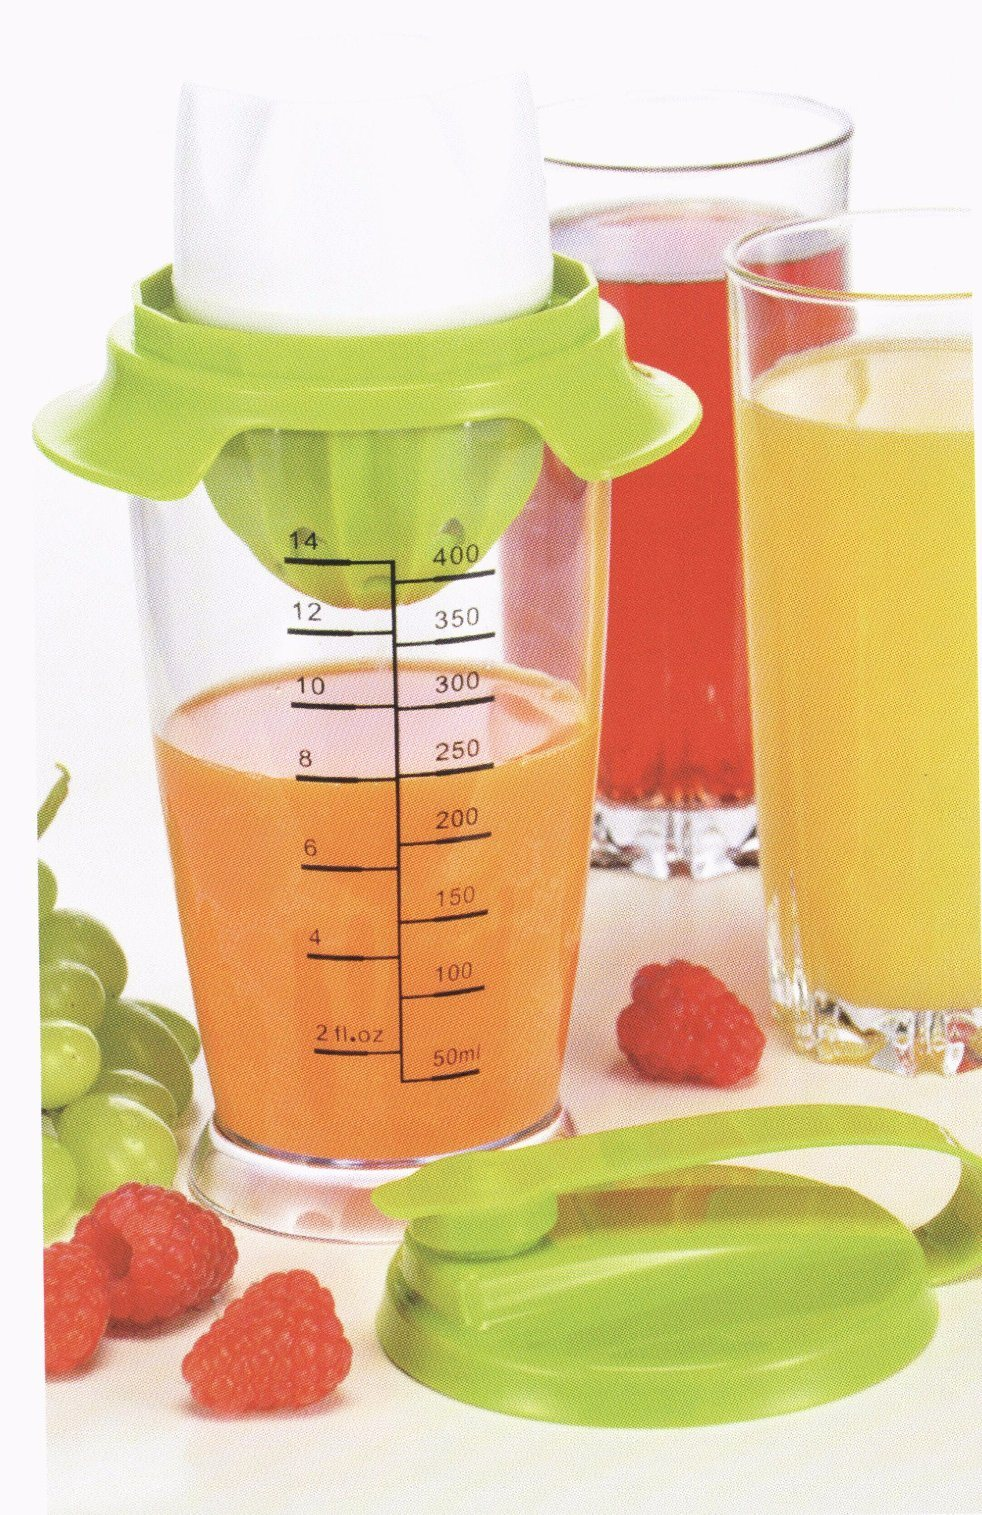 Home Appliance Plastic Mill Juicer Juice Maker Juicy Mixing Set Jm005